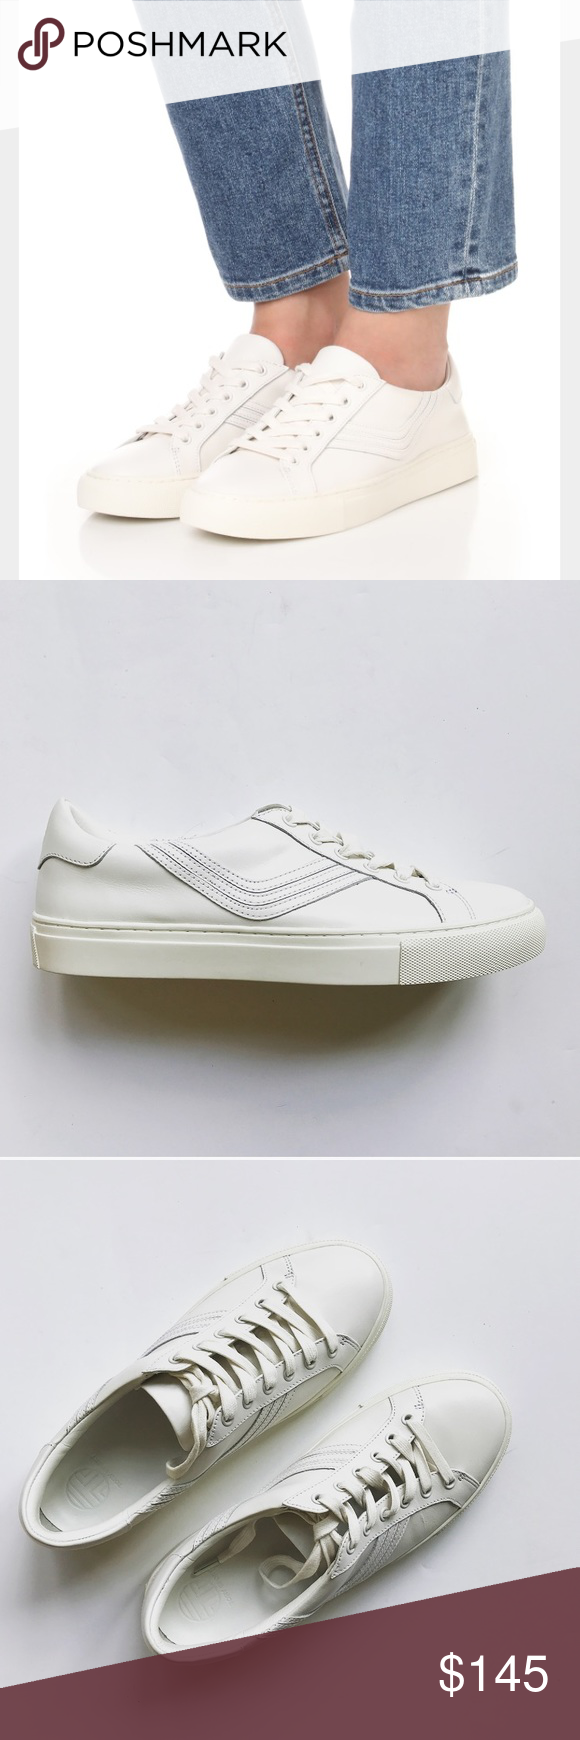 9099019c2db0 New Tory Burch sport Chevron sneaker in white Super cute pair of Tory Sport  Chevron Colorblock sneakers in all white. New with box